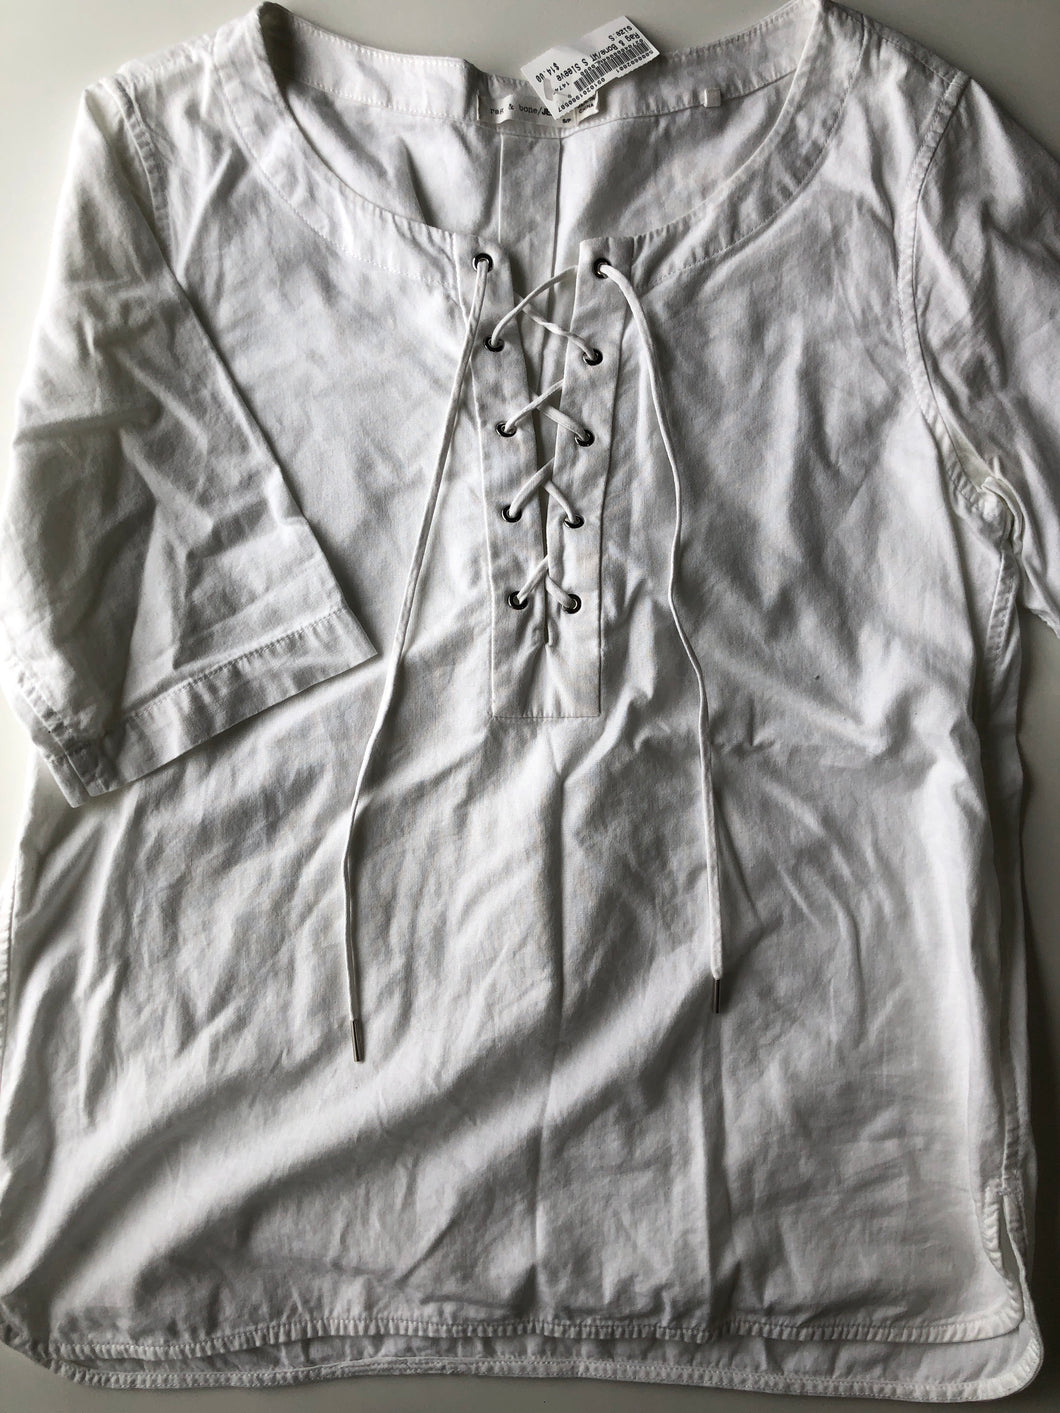 Gently Used Women's Rag & Bone Top Size S